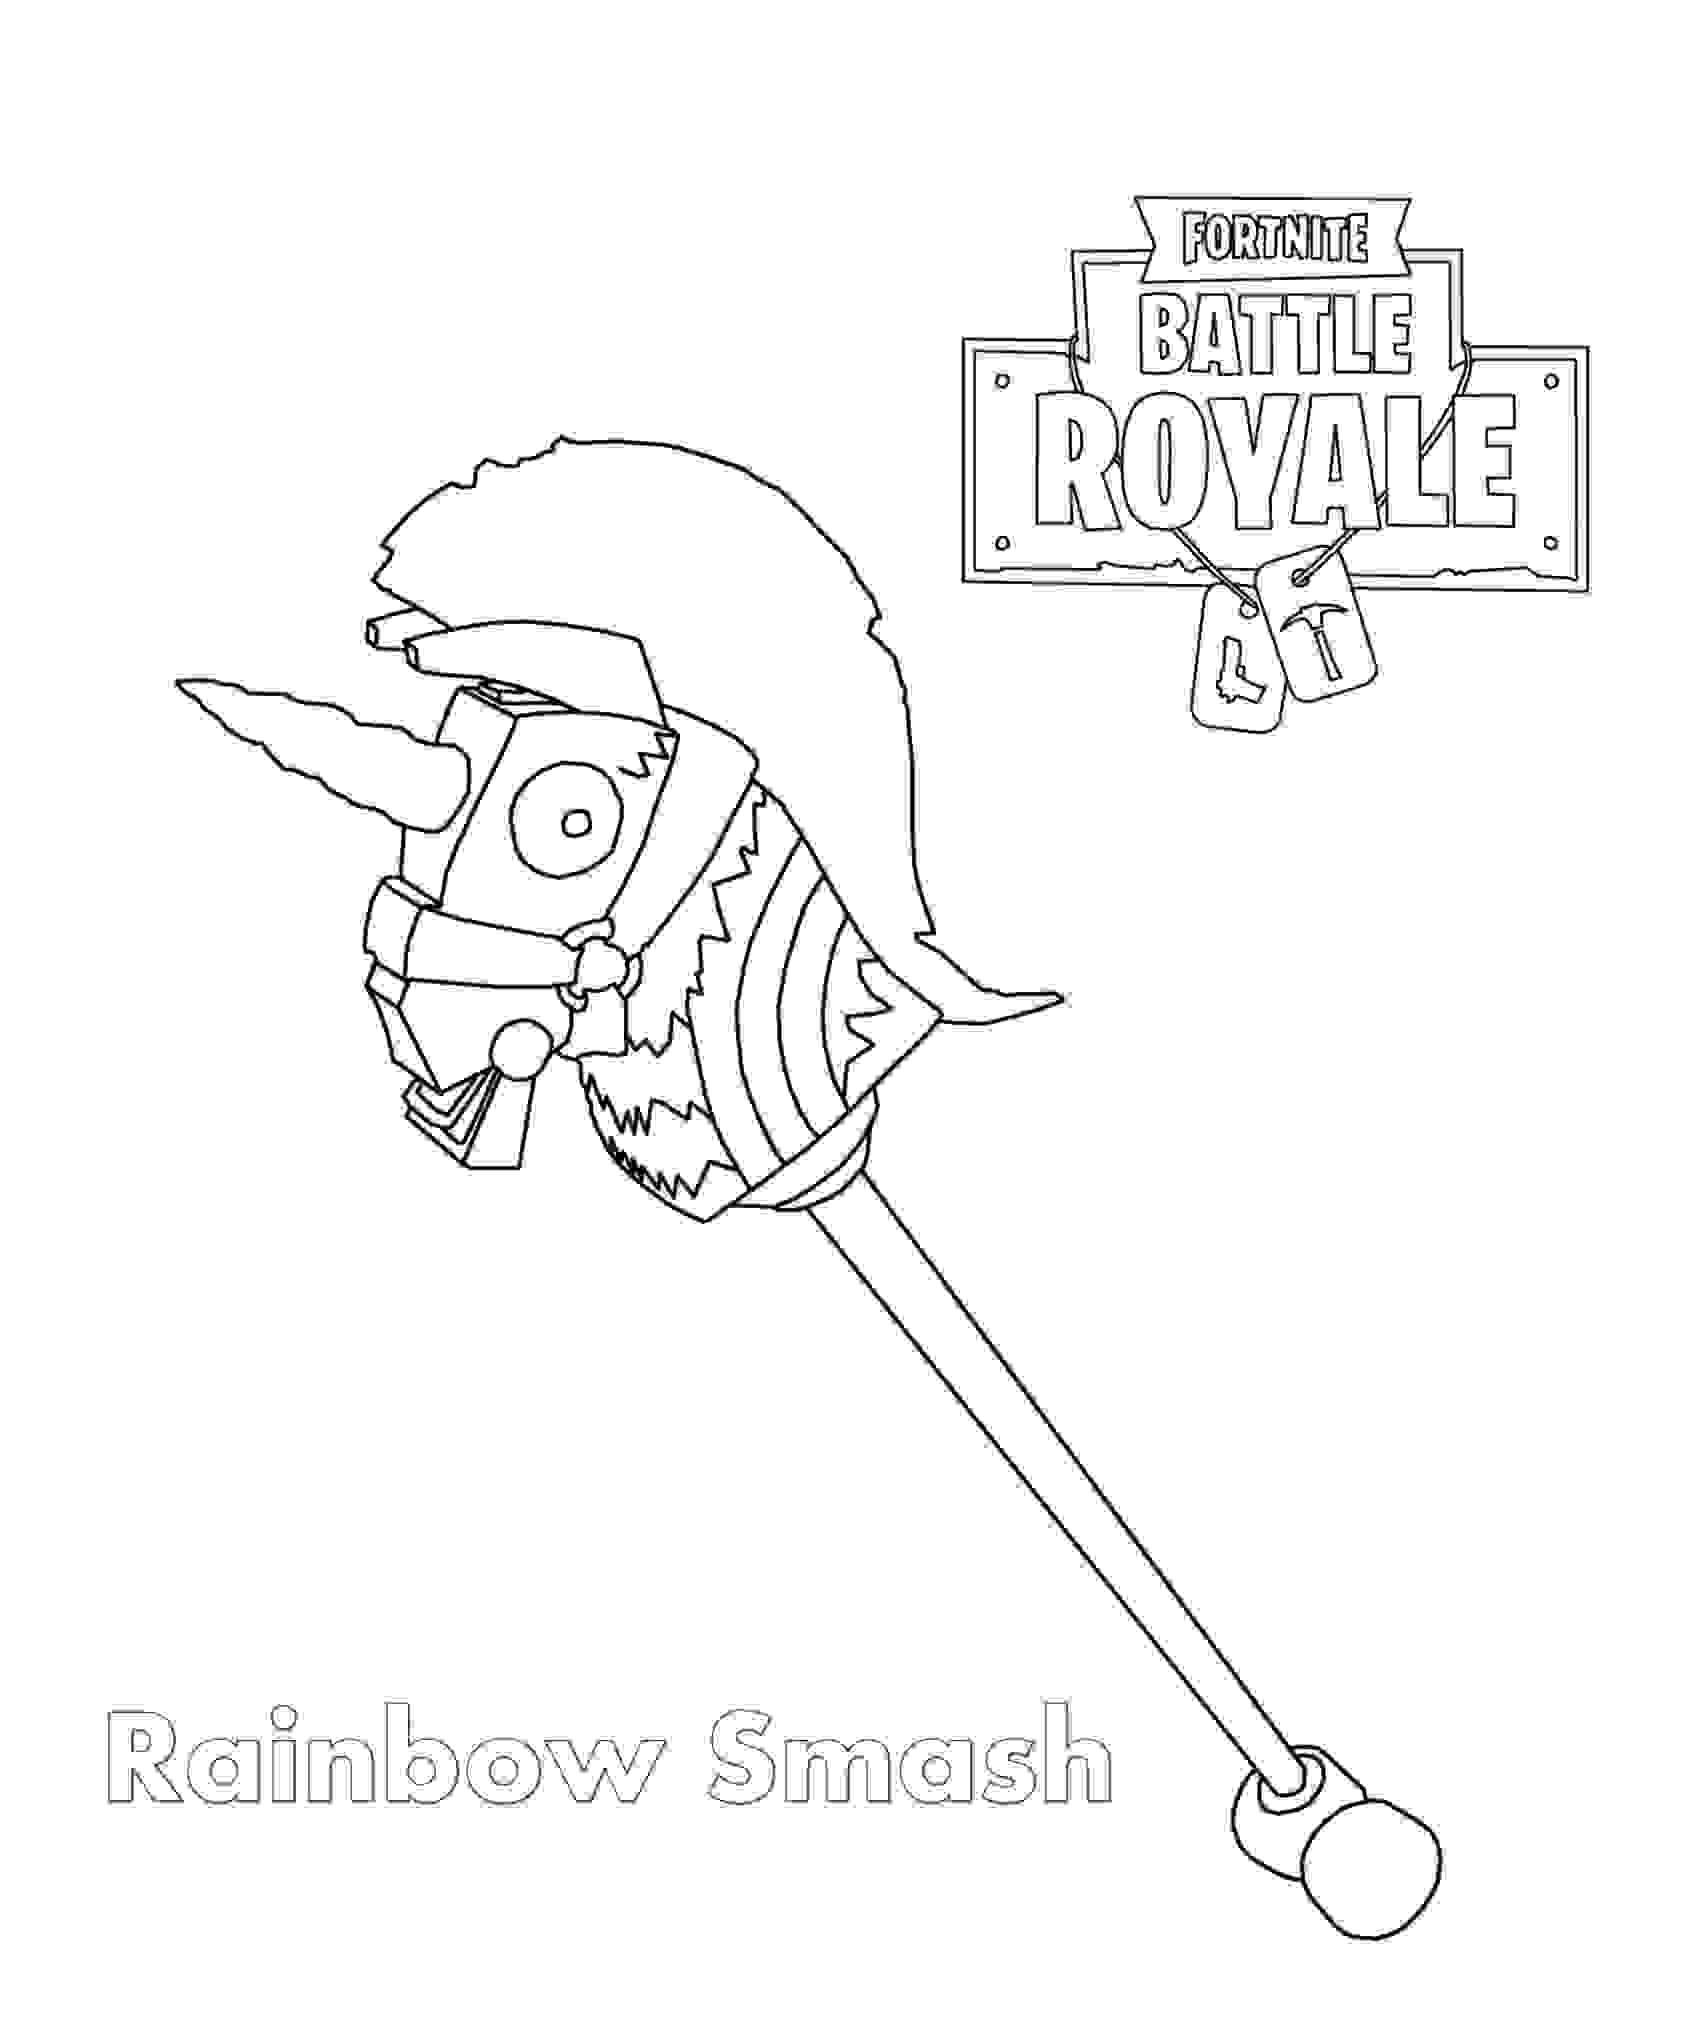 Rainbow Smash Pickaxe is an Epic Harvesting Tool in Fortnite Battle Royale Coloring Page